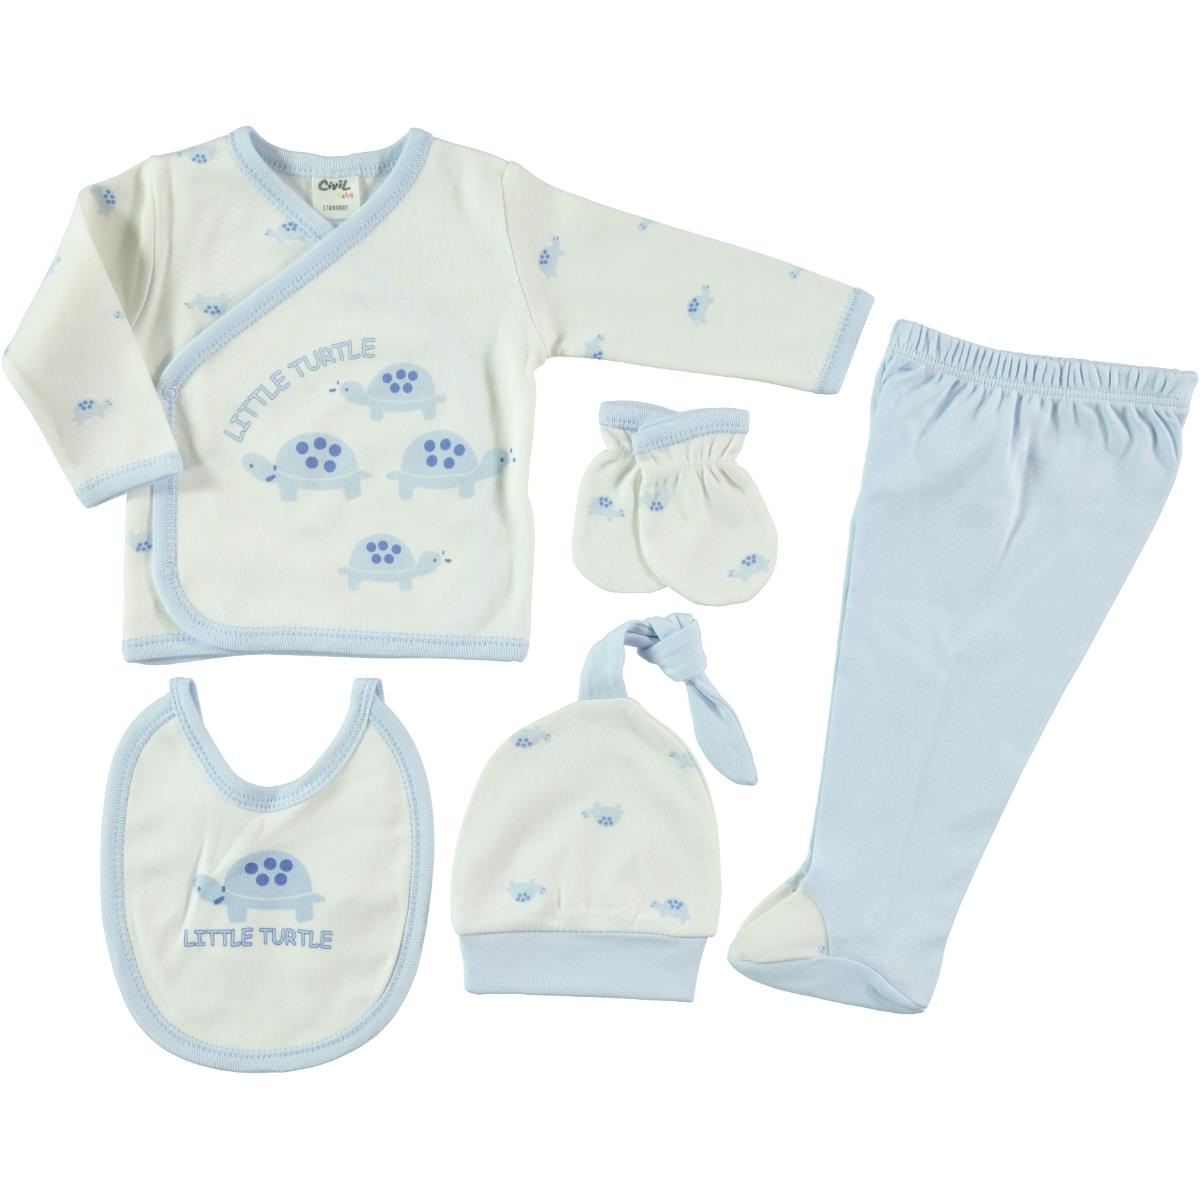 Civil Baby Team blue-baby newborn 5 Zibin